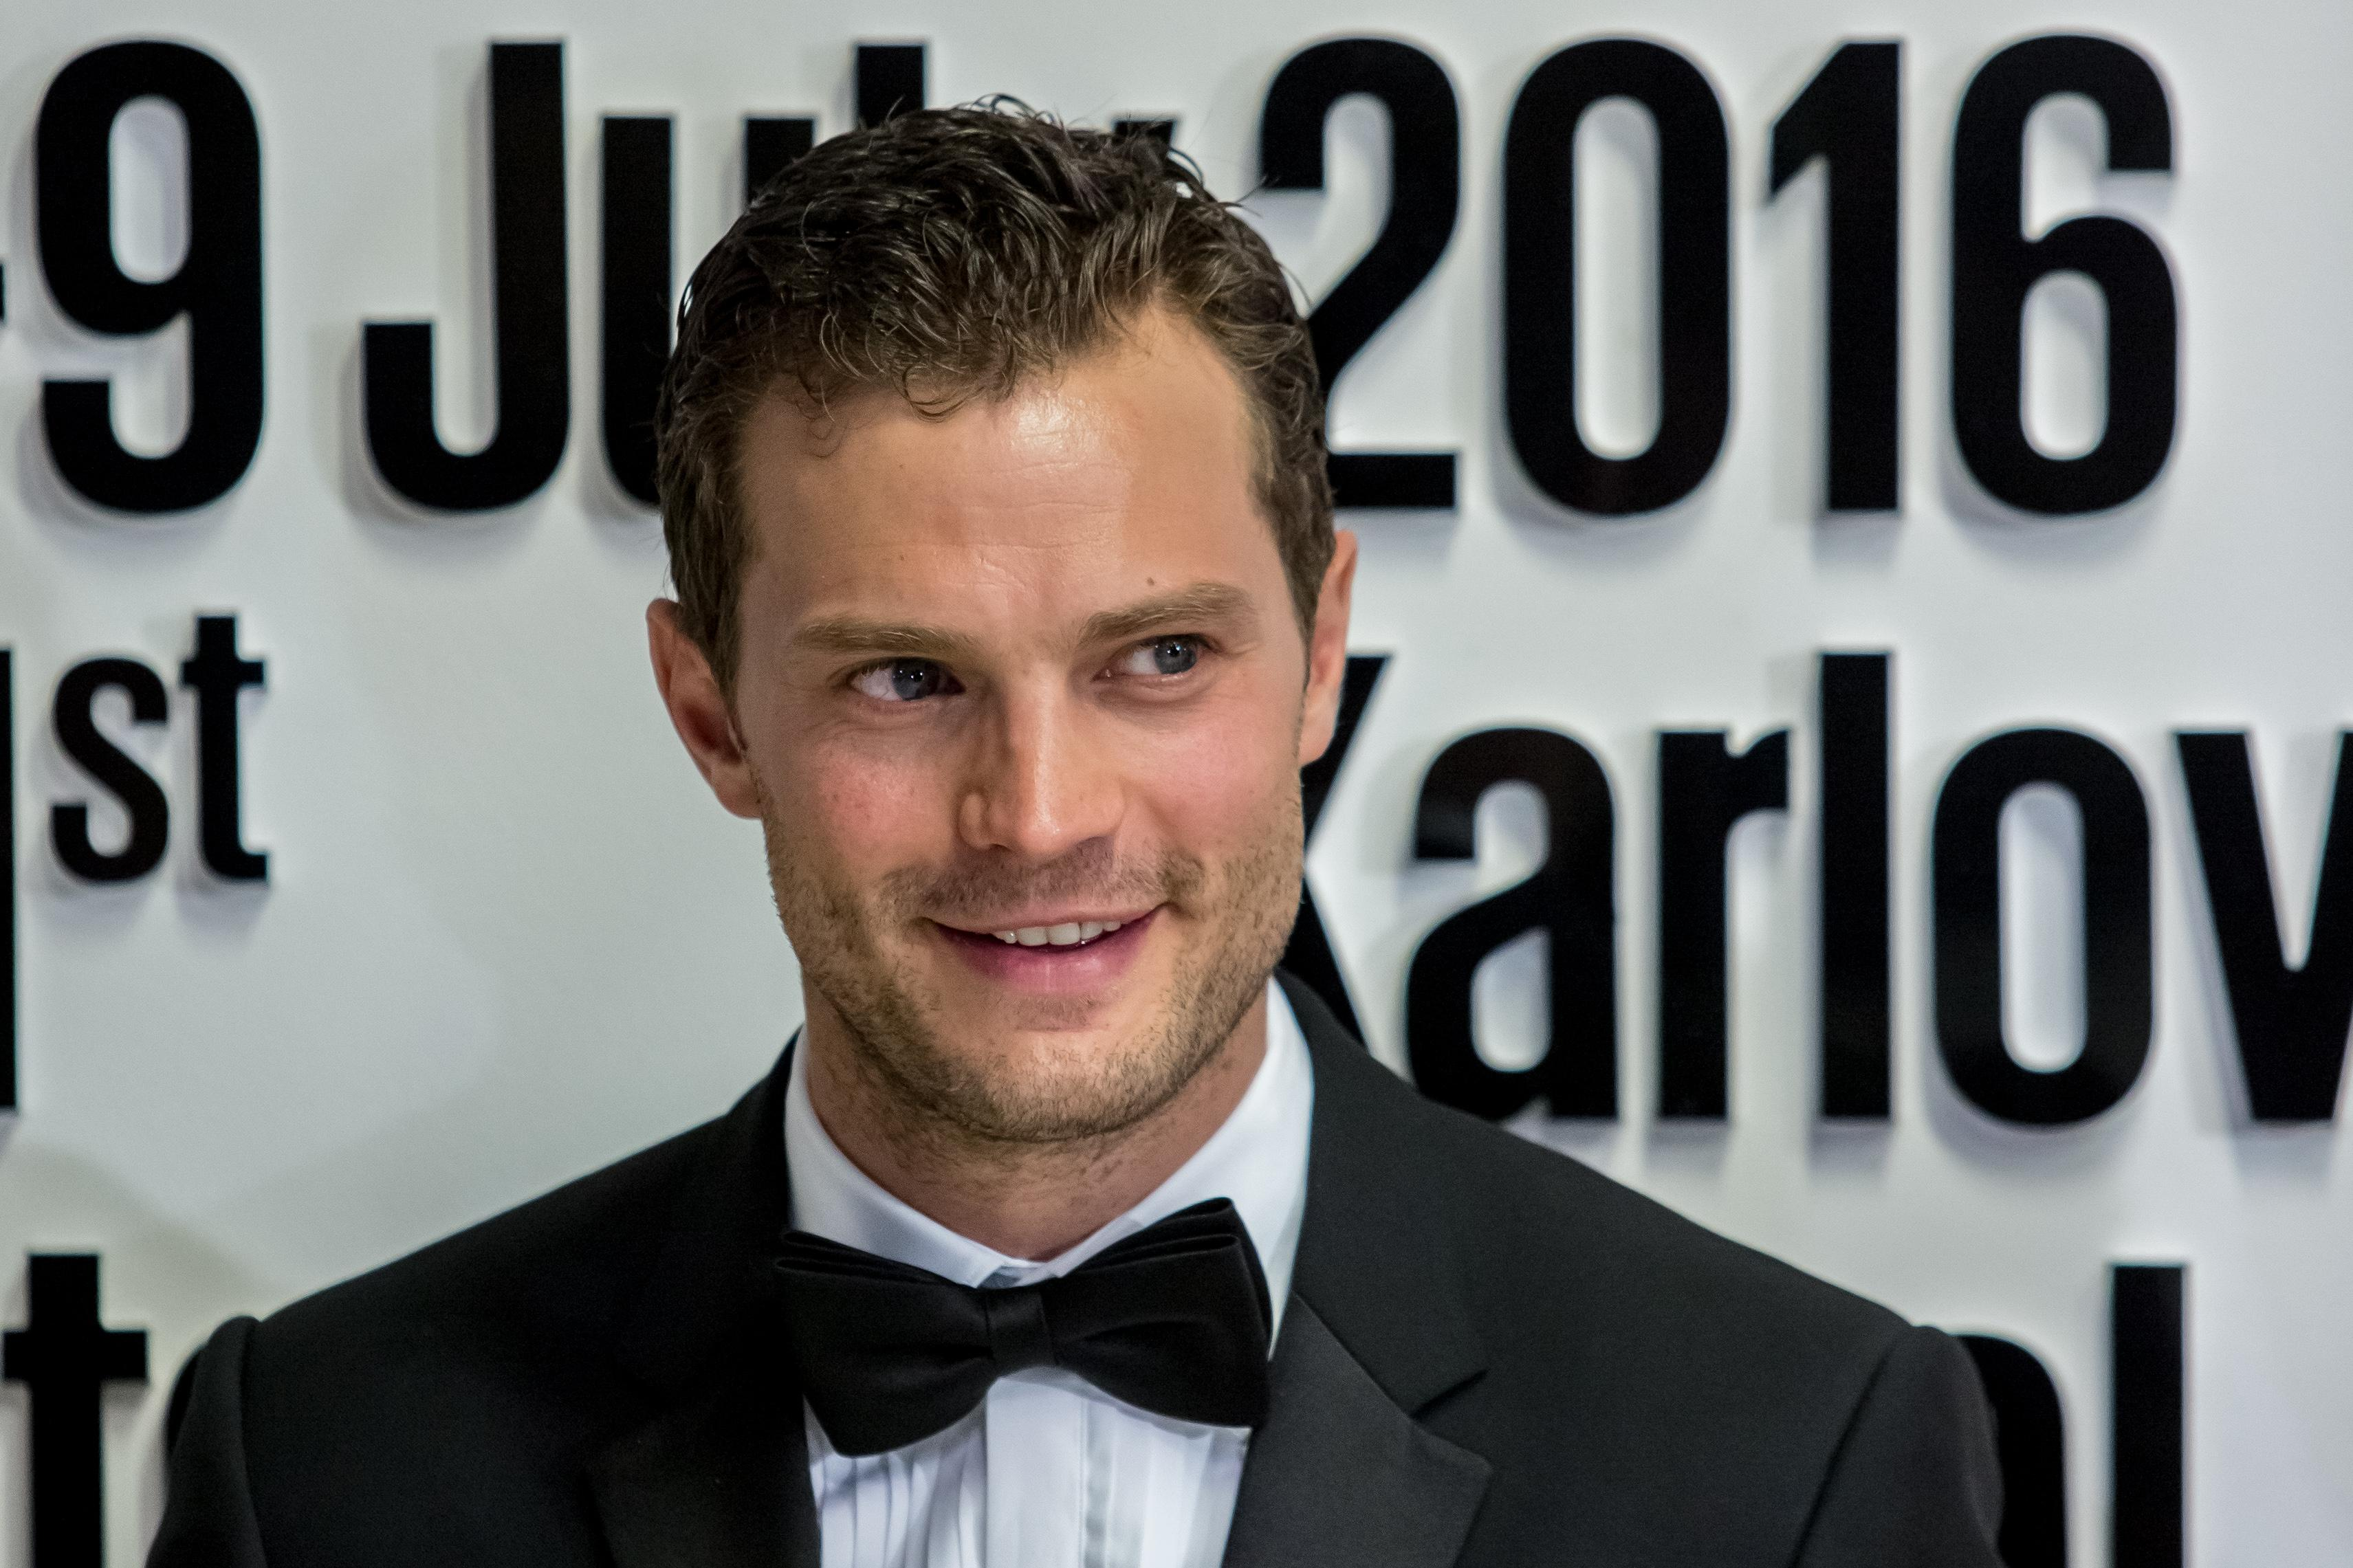 Jamie Dornan QUITS Twitter and Instagram because of 'disgusting' trolls